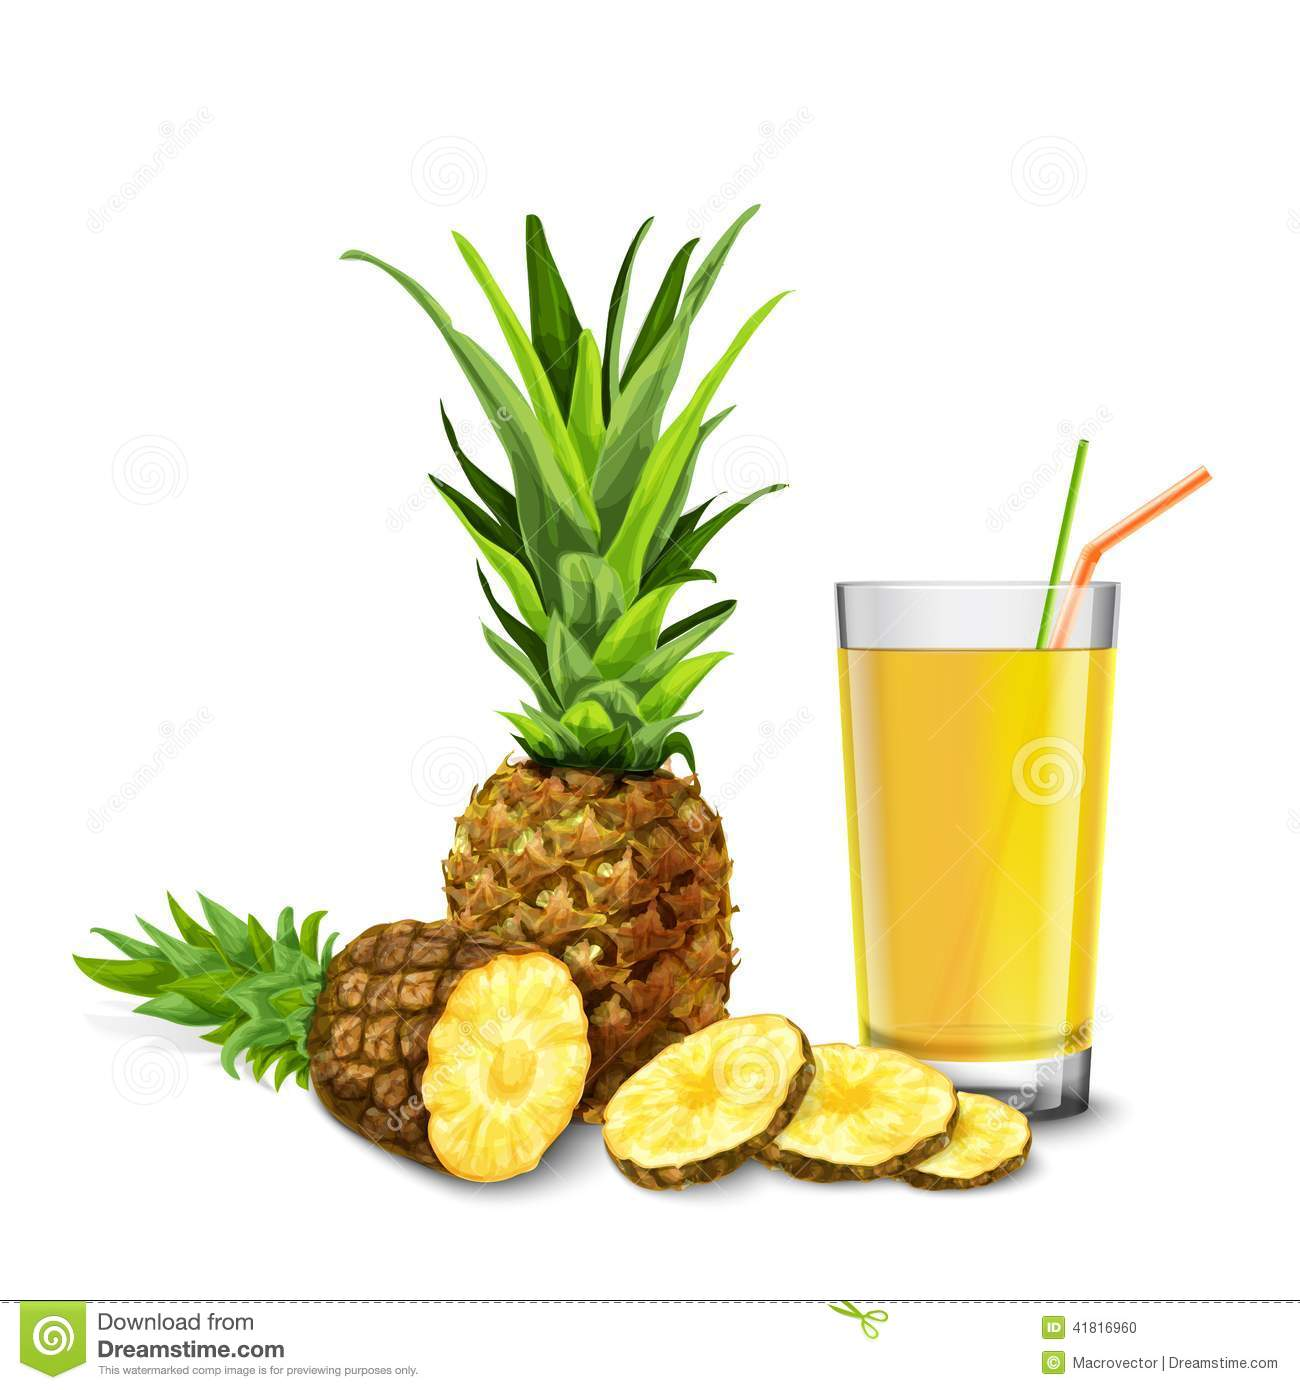 Pineapple realistic. Images free download best